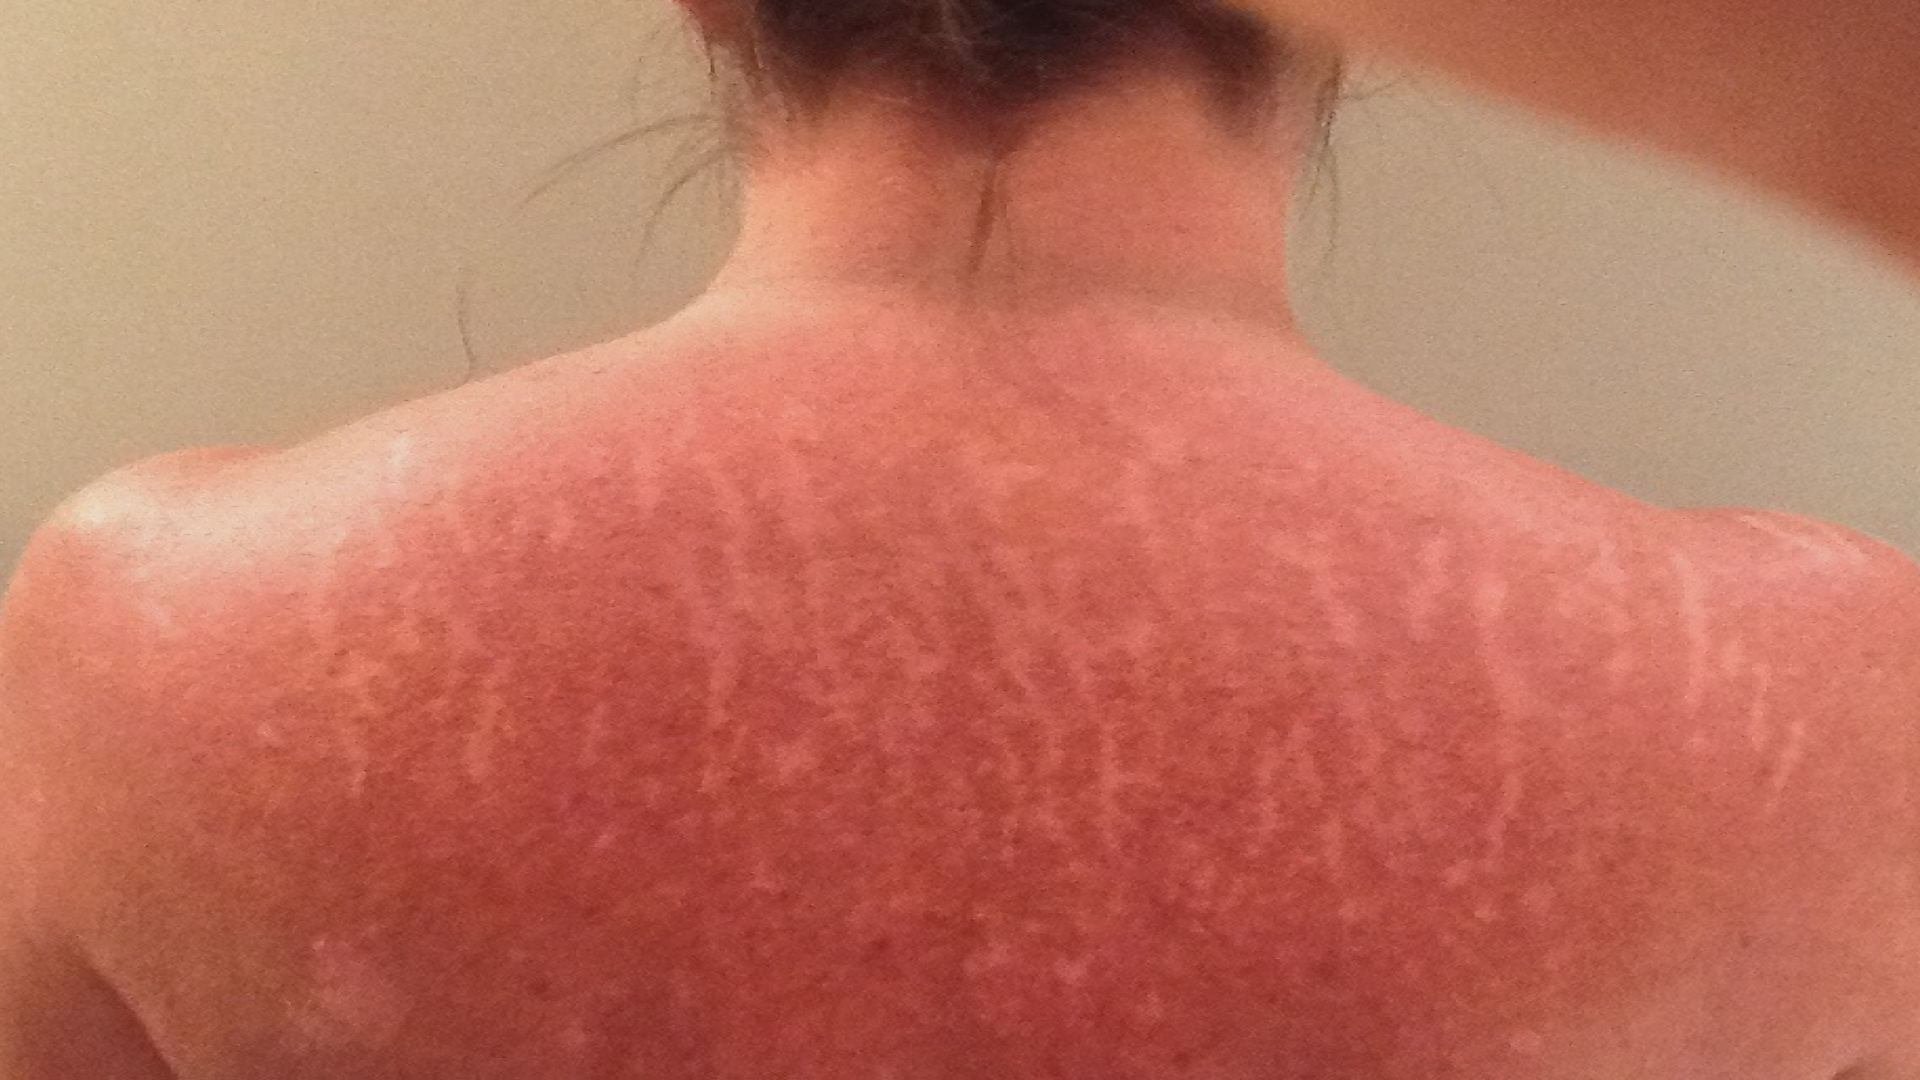 Paula Blades shared this picture of her back, riddled with scars. For years, she dealt with sores that would not heal.